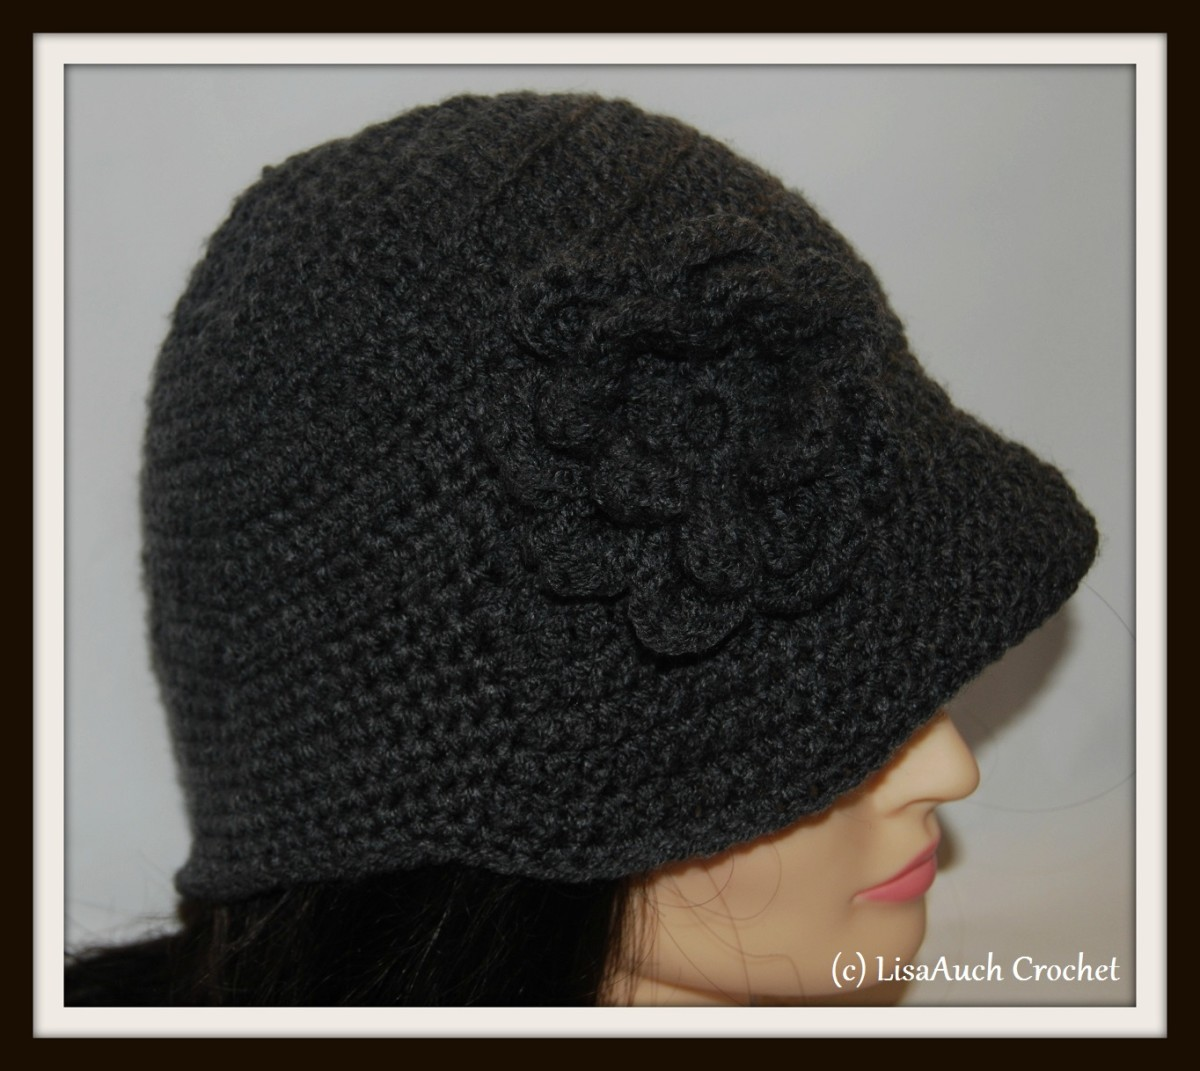 Free Crochet Pattern For Deerstalker Hat : Free Crochet Hat Patterns for Woman & How to Crochet a Hat ...